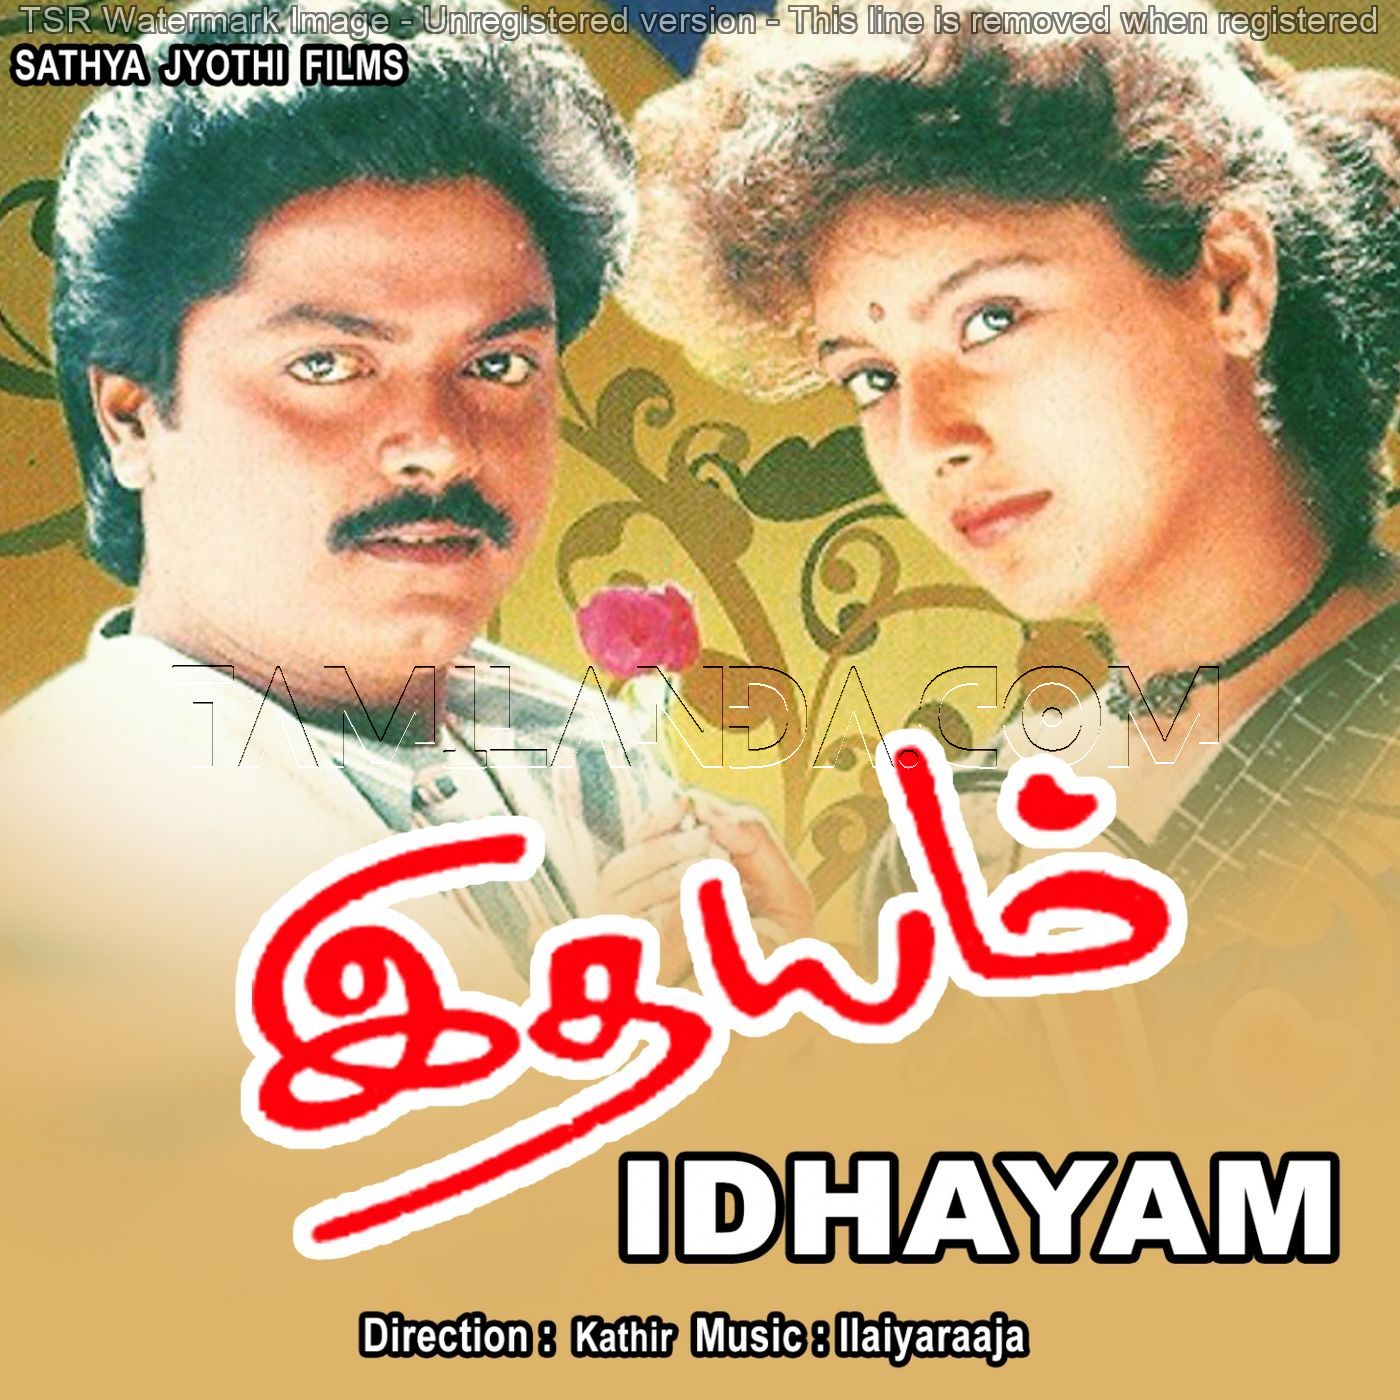 Idhayam FLAC Songs (1991)